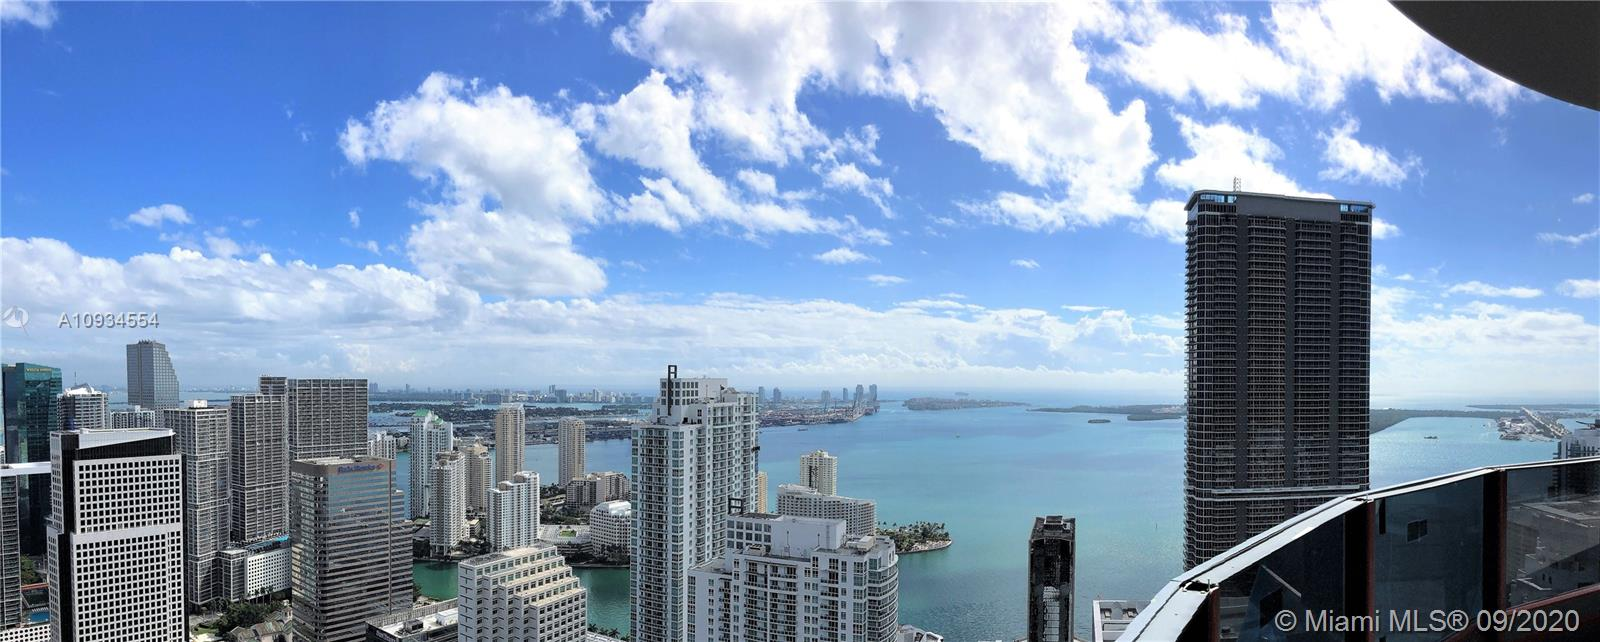 Ugo Colombo's CMC Group presents their newest luxury condo development Brickell Flatiron; a 64-story glass tower featuring the highest quality Italian finishes, unparalleled services, resort style amenities and expansive residences. Located in the heart of Brickell, residents are ideally situated within walking distance of Mary Brickell Village and Brickell City Centre—offering unparalleled access to a wide array of world-class restaurants, shops, arts & culture.